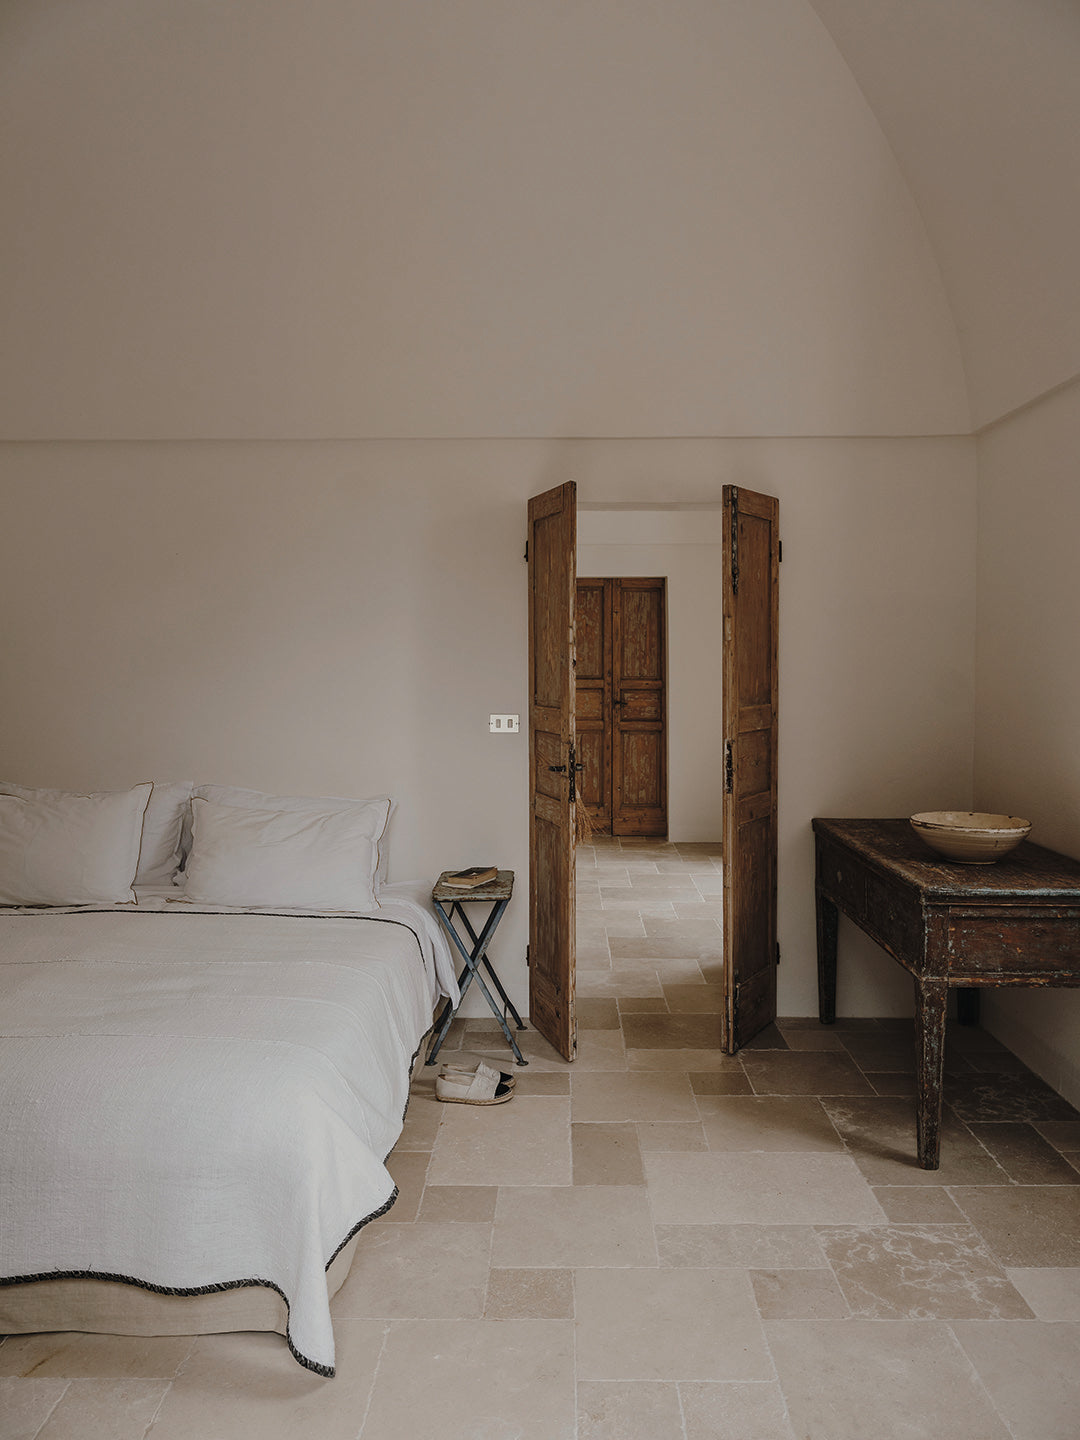 Masseria Moroseta by Andrew Trotter, photographed by Salva Lopez